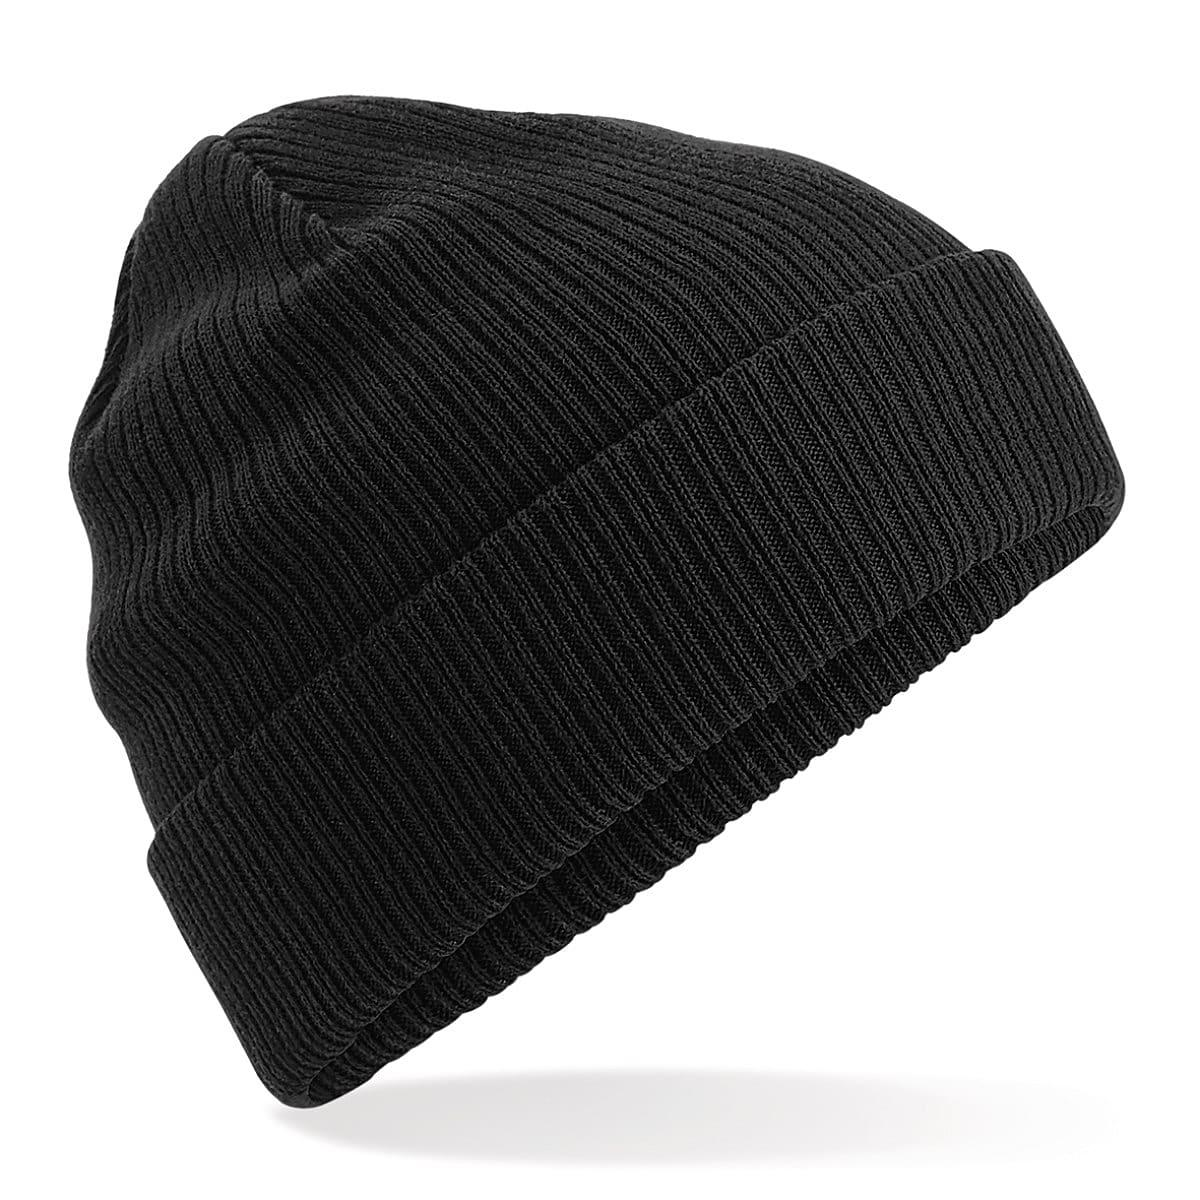 Beechfield Organic Cotton Beanie Hat in Black (Product Code: B50)